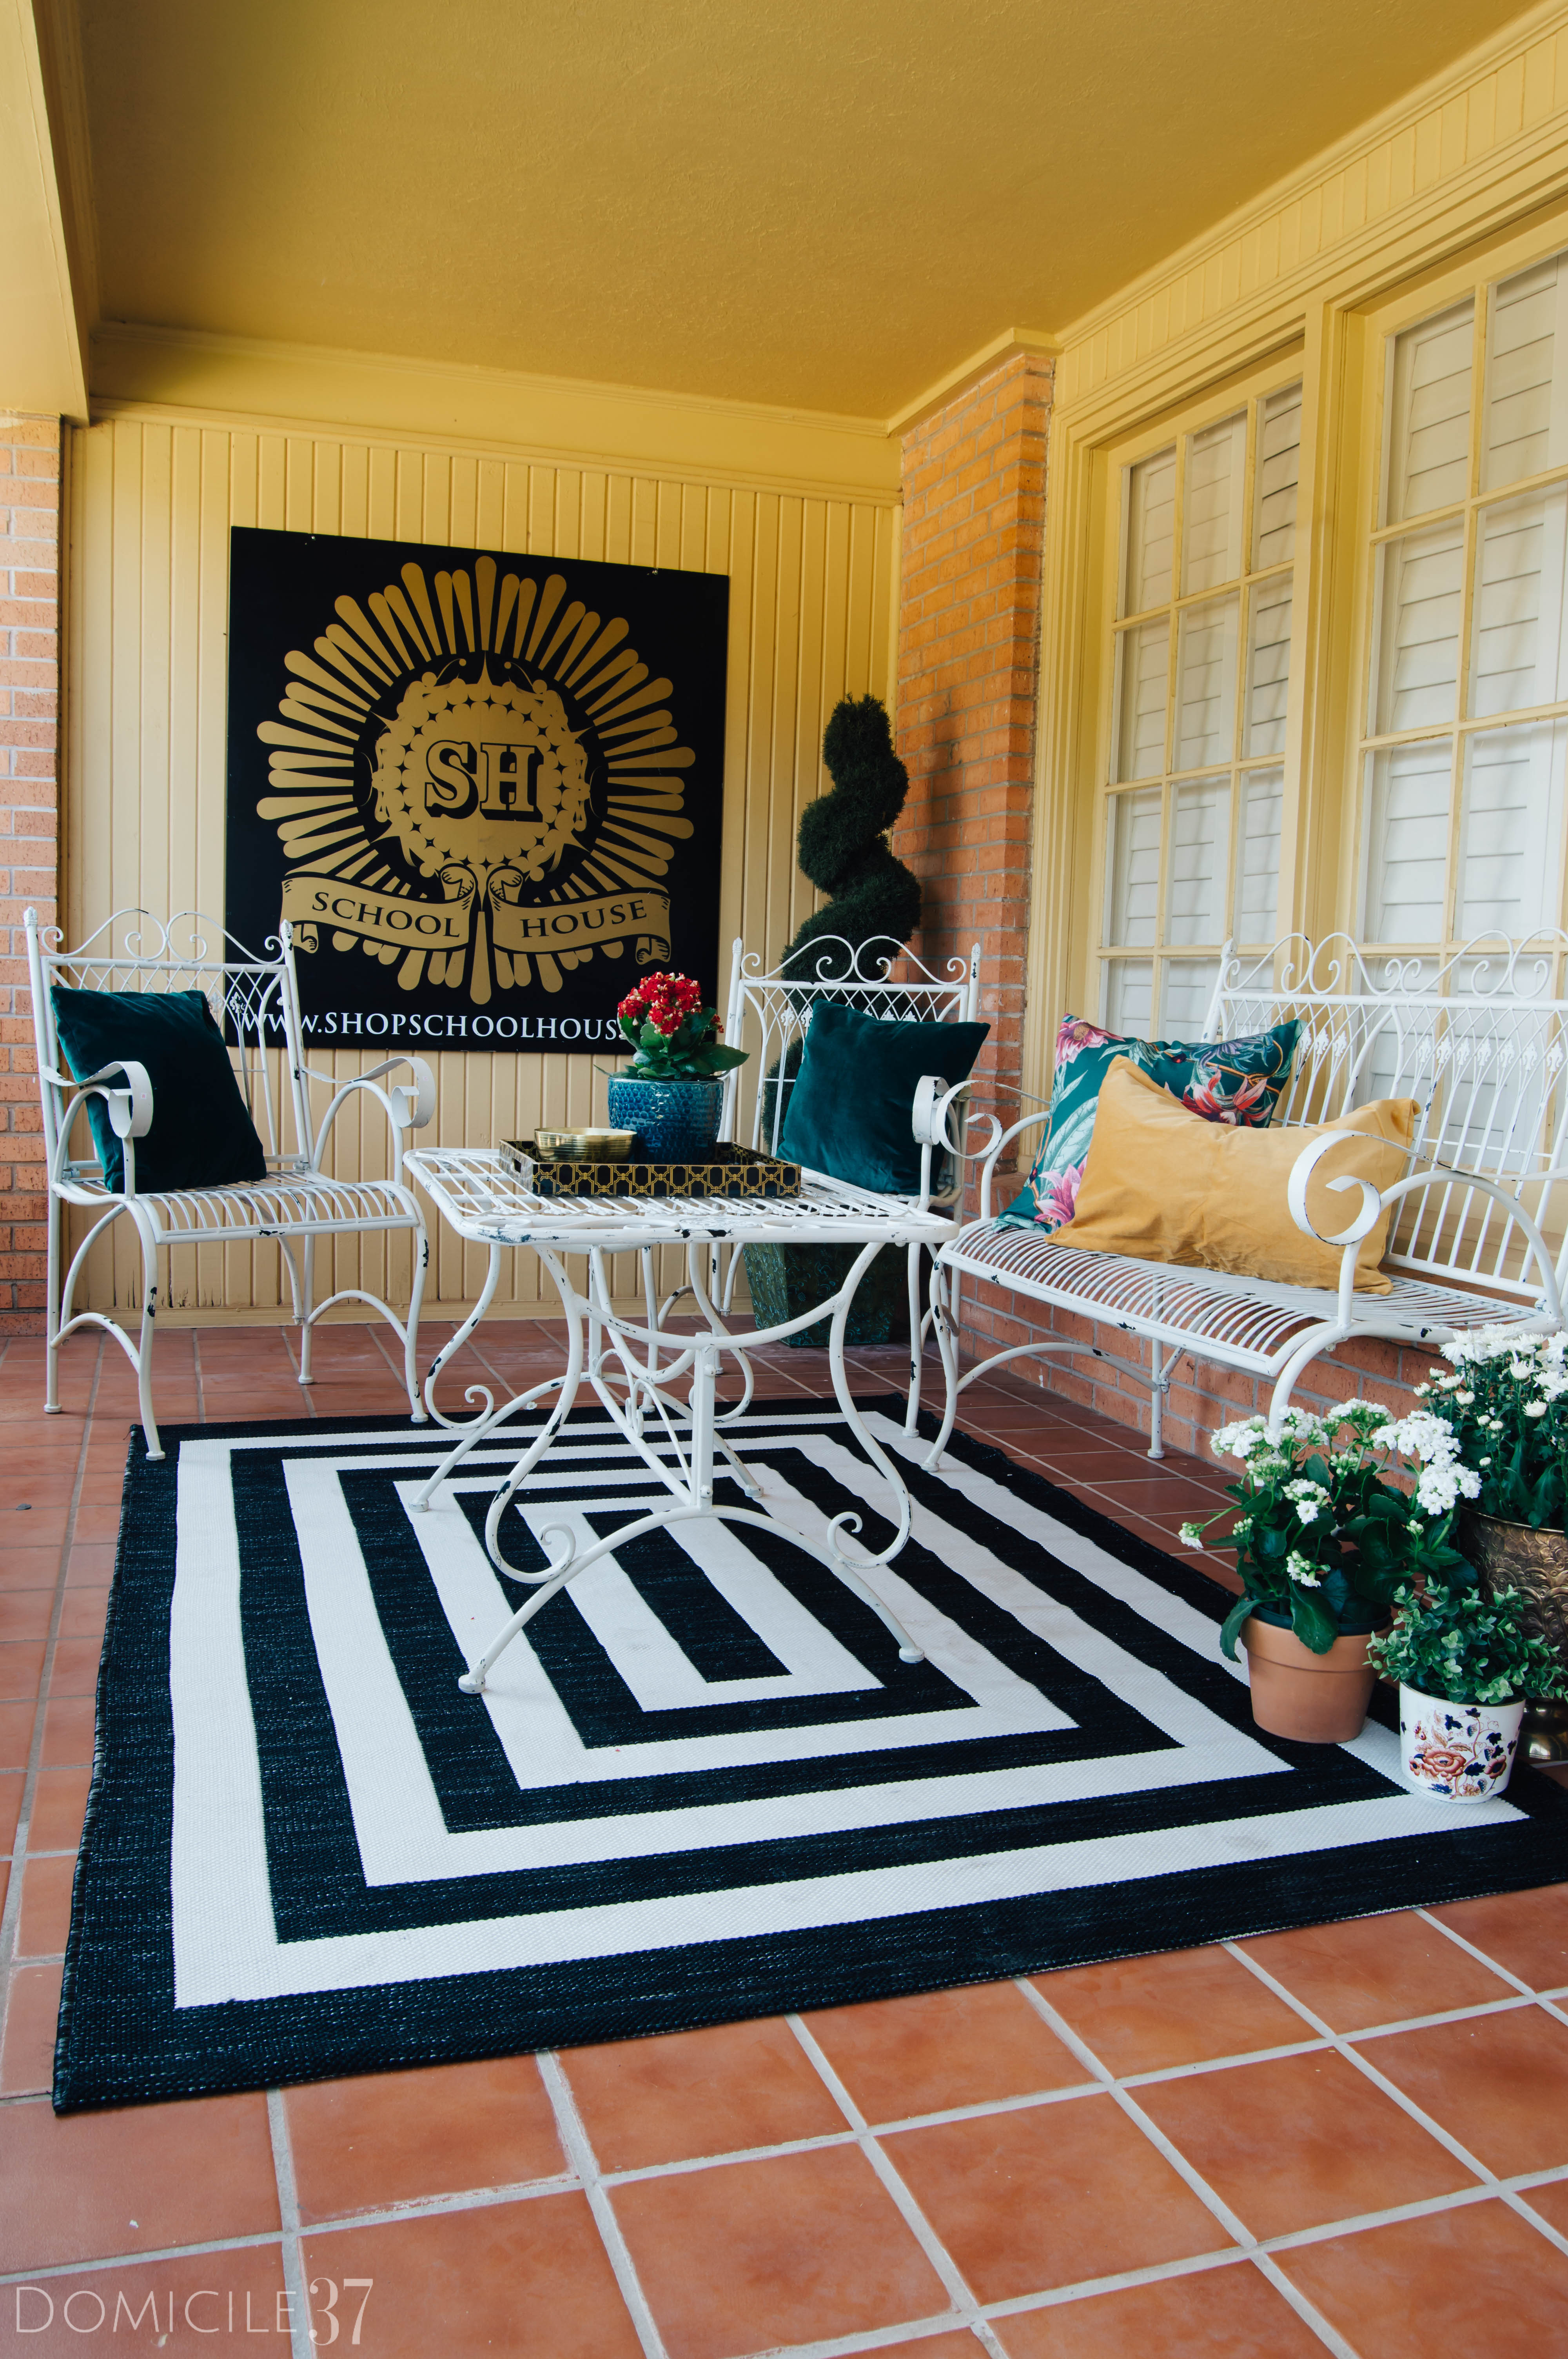 Terracotta porch with wrought iron furniture, metal outdoor wall decor, color outdoor pillows, black and white rug